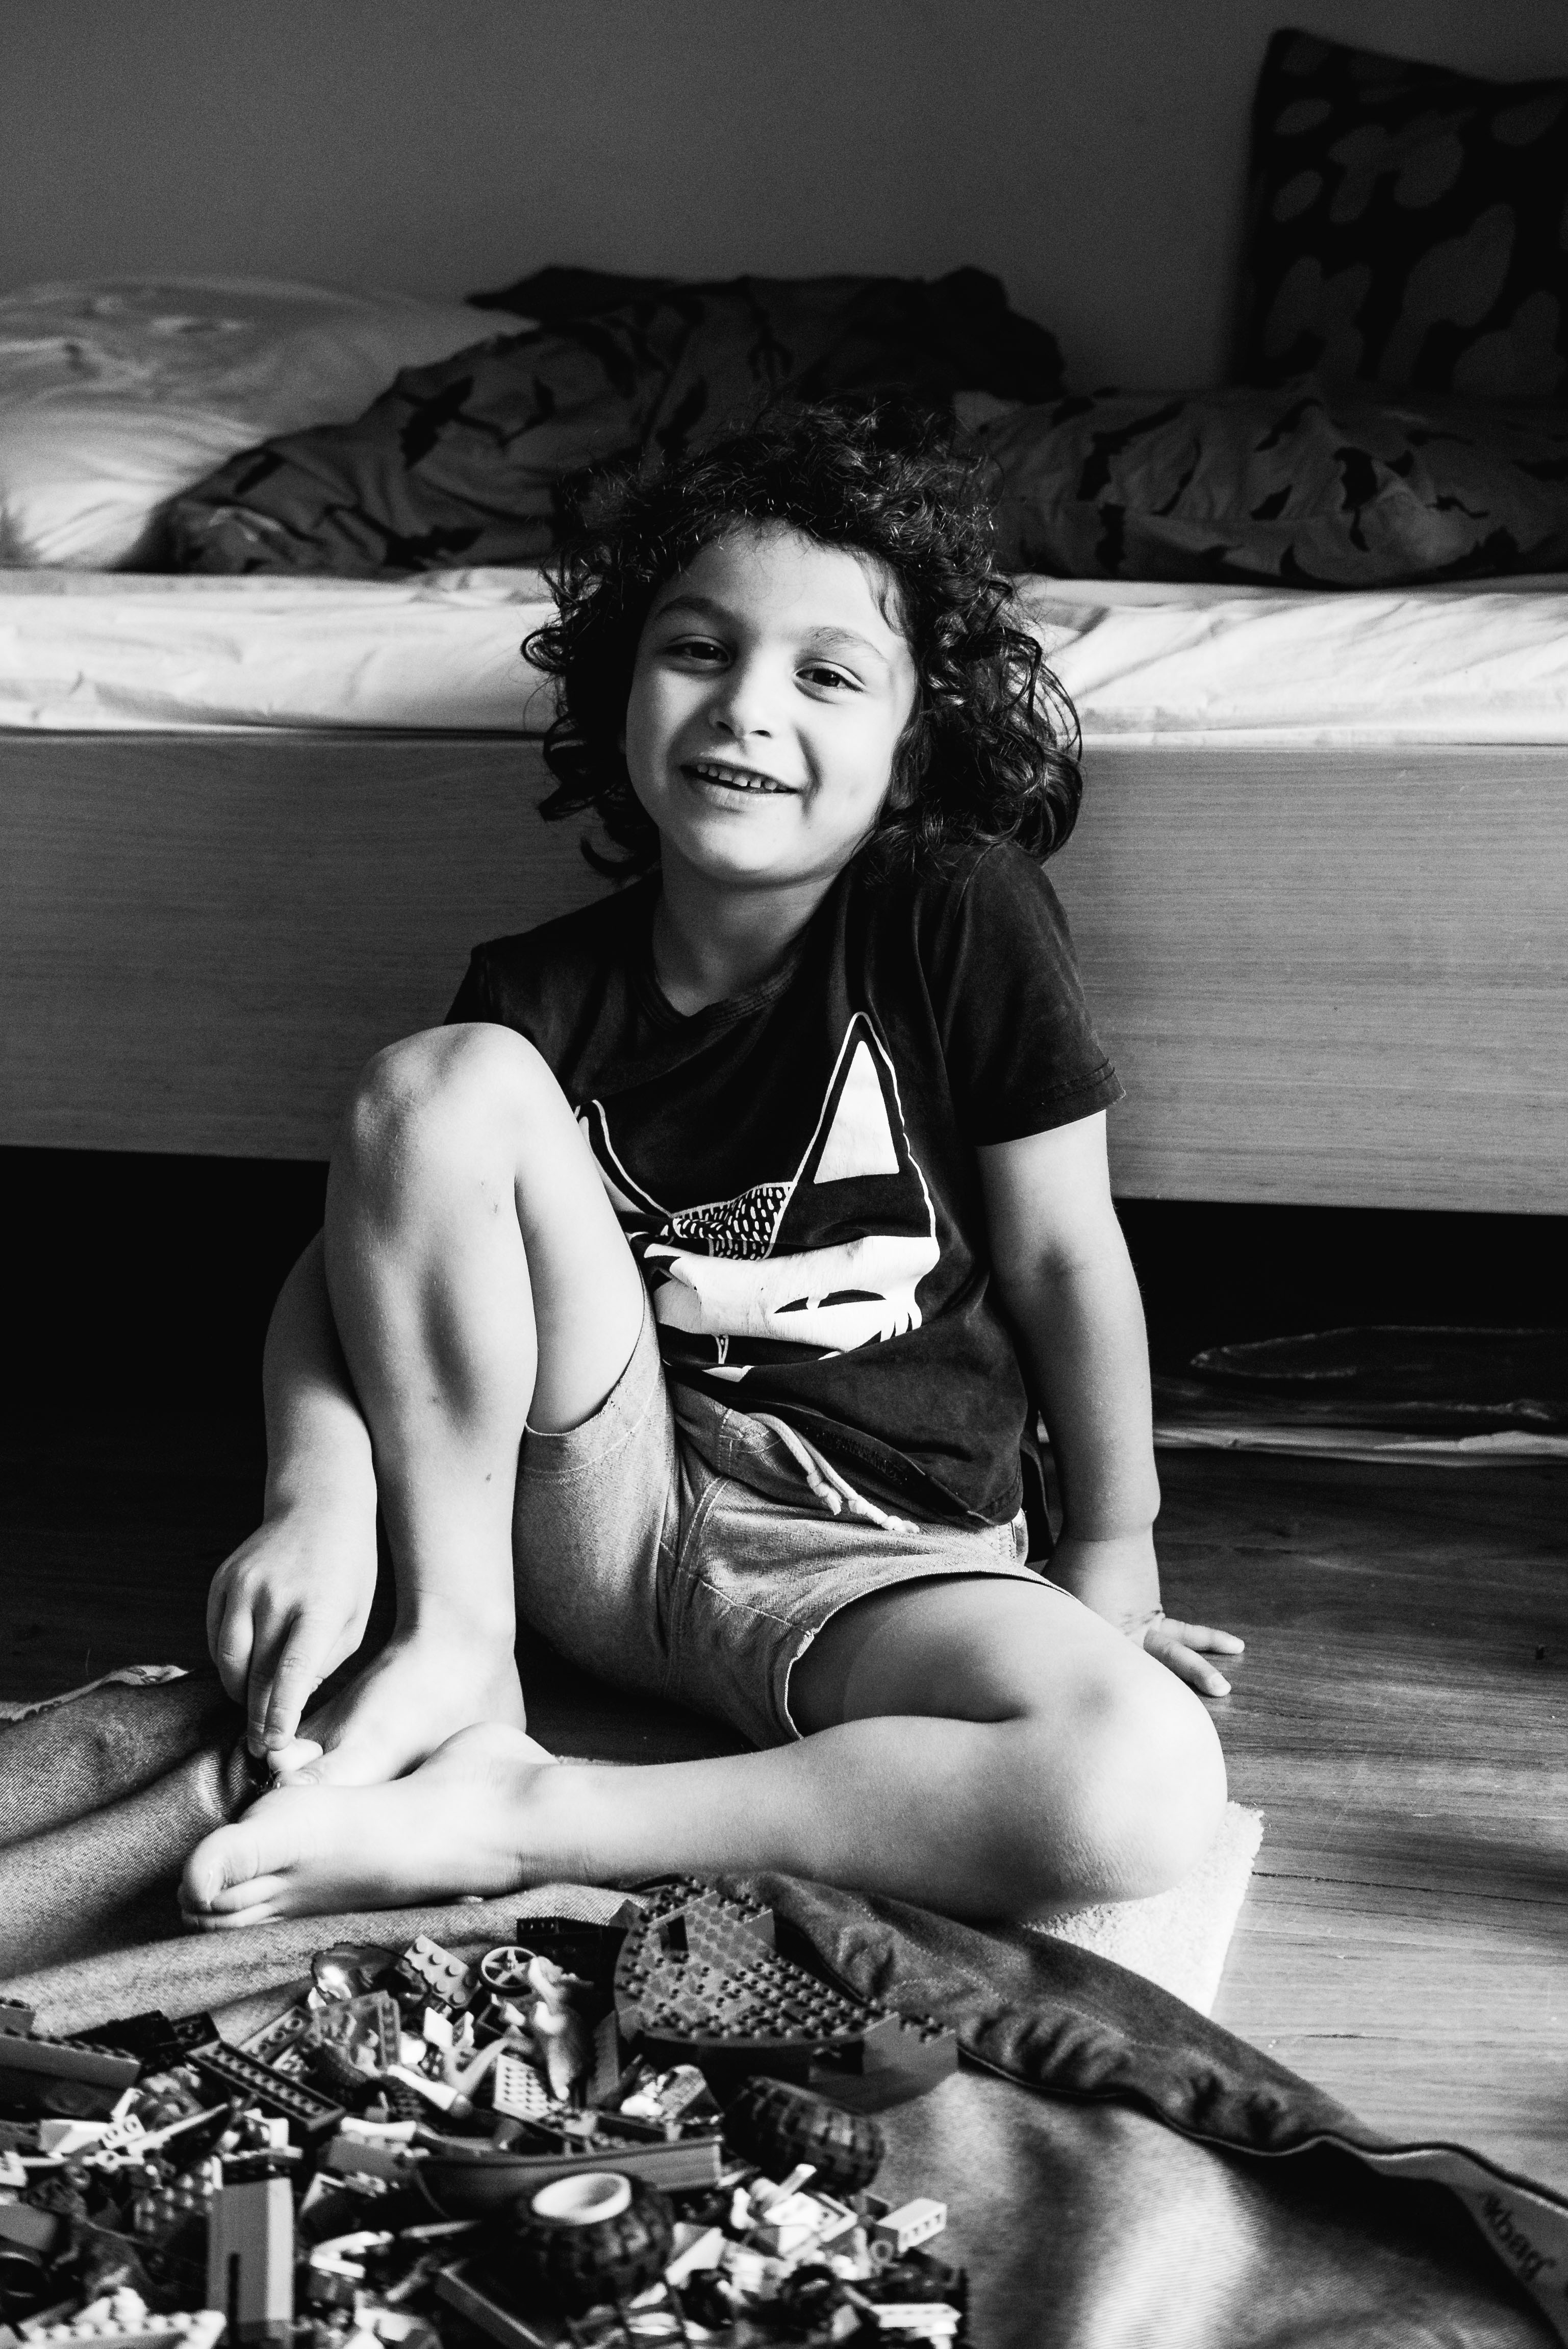 in-home session photograph of a boy smiling and sitting by his bed in Carlton North, Melbourne, Australia